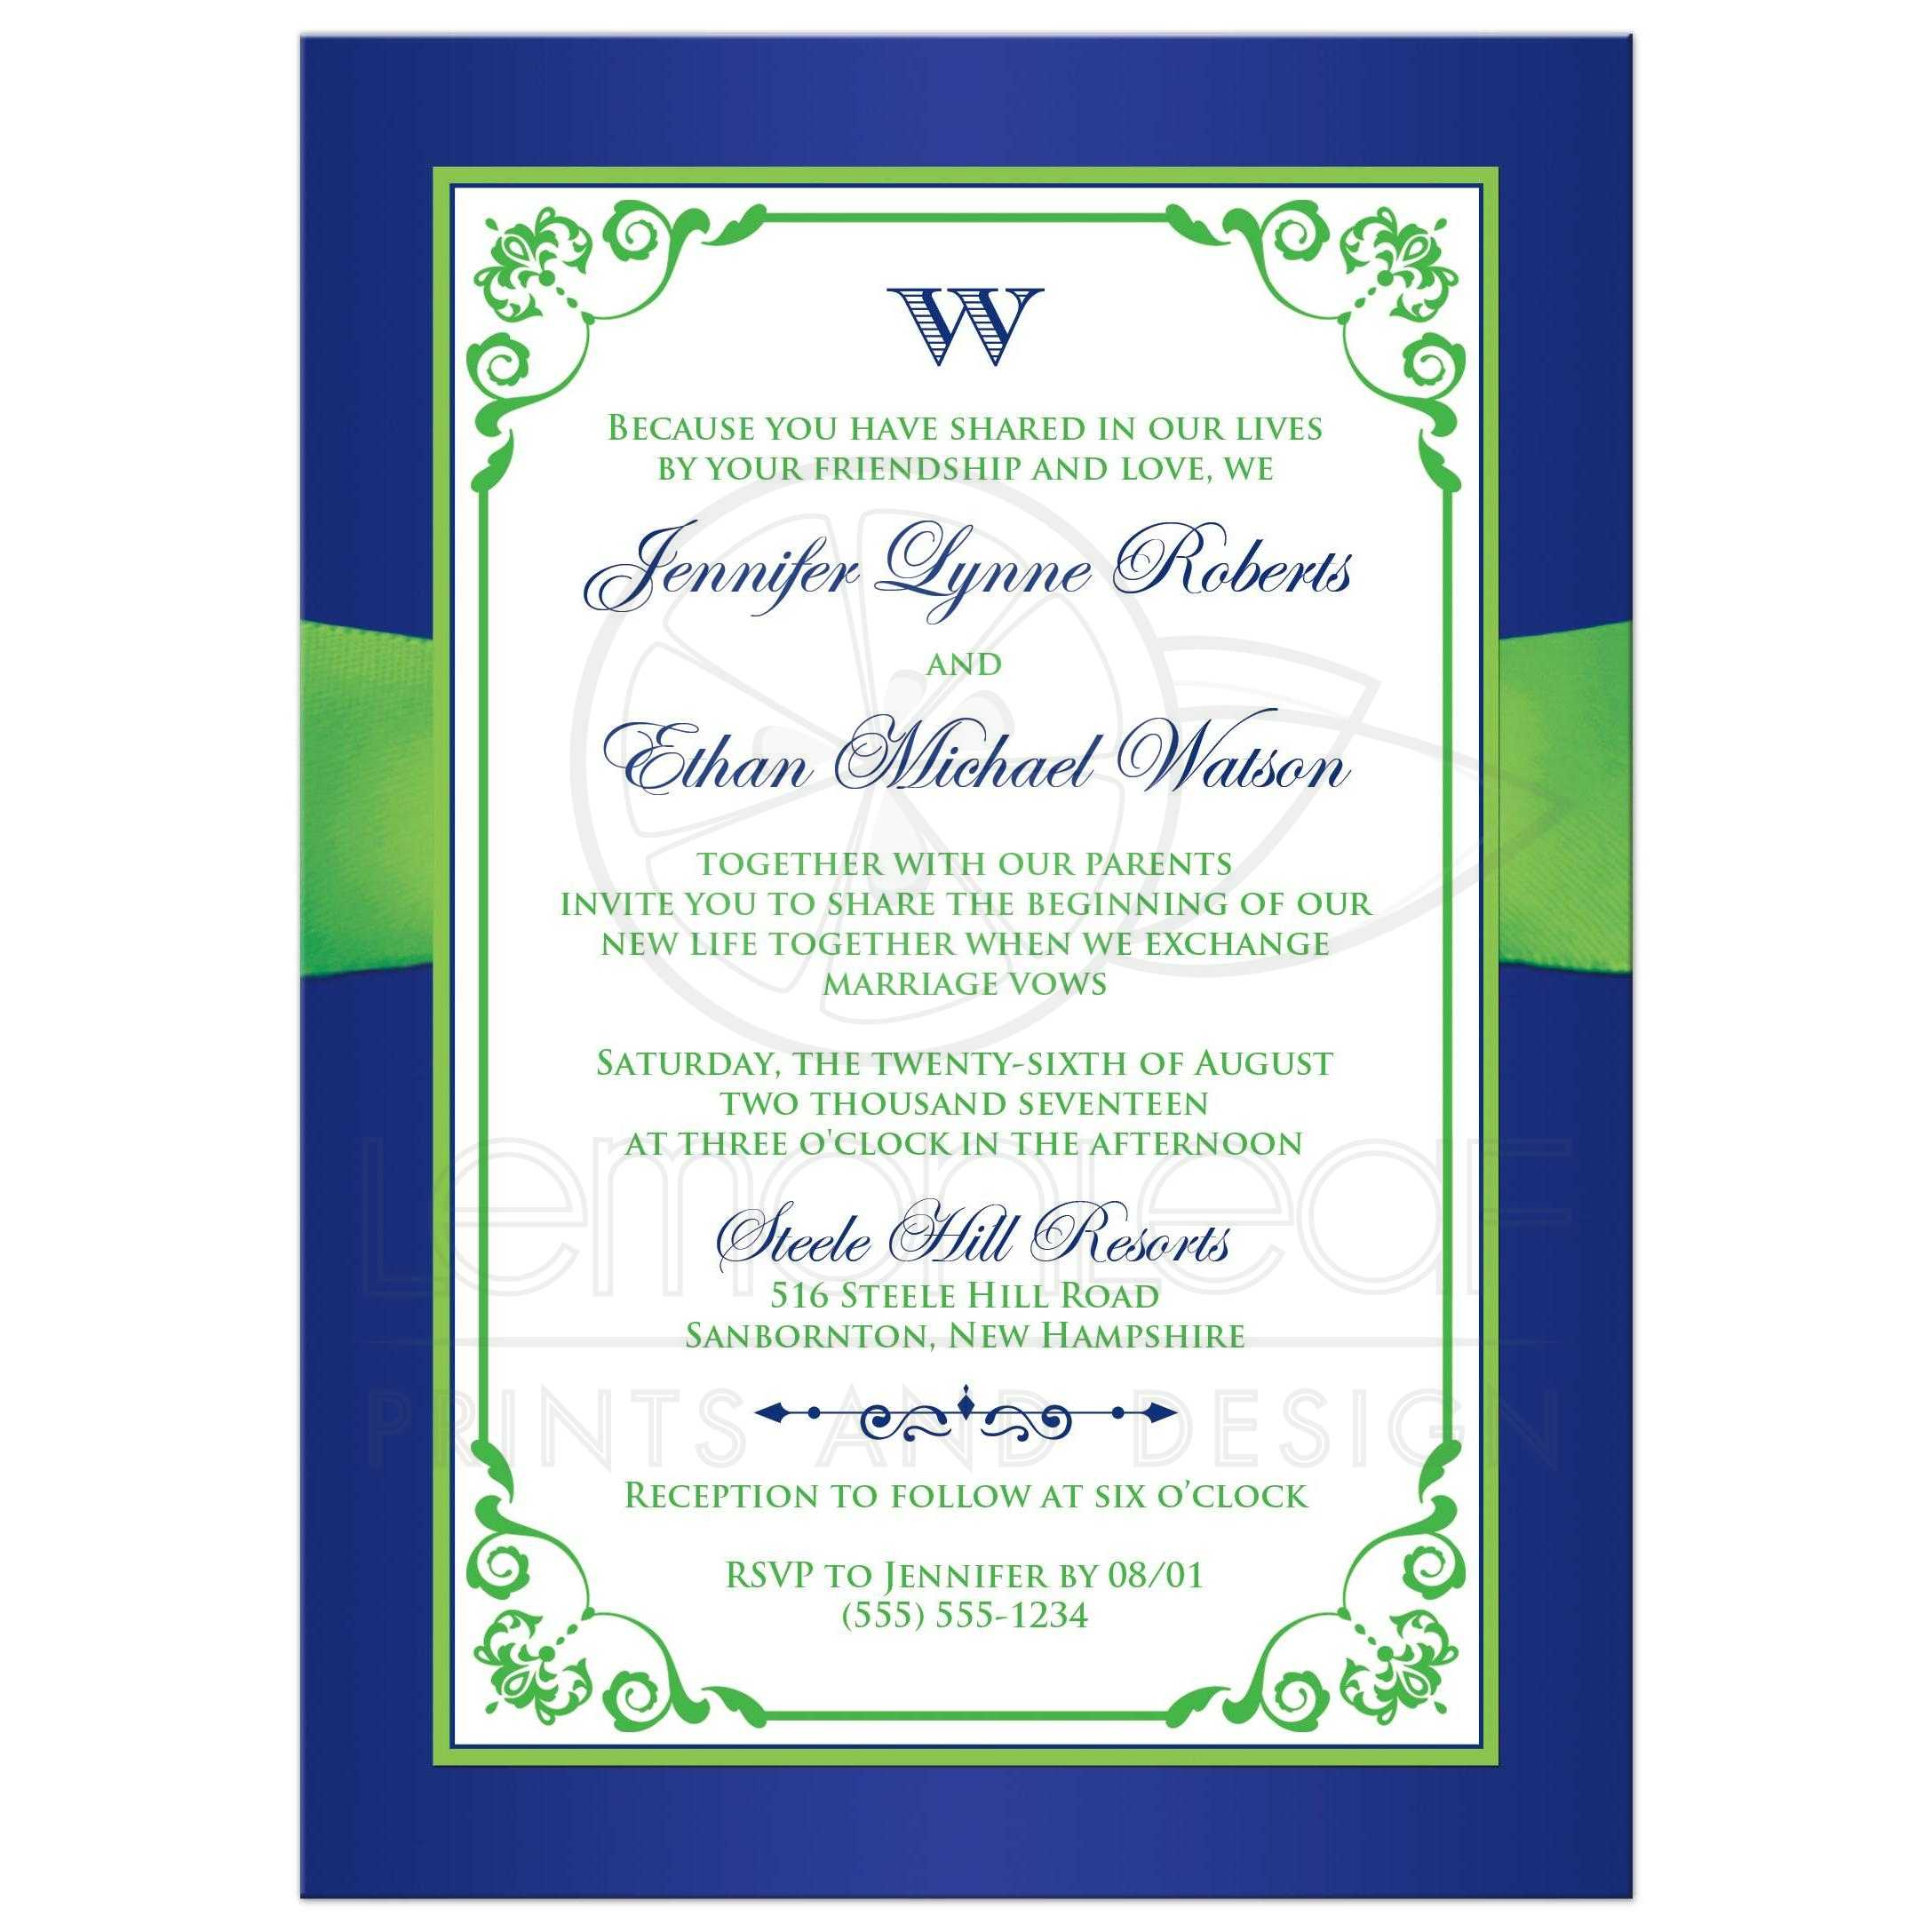 Glitter Royal Or Cobalt Blue Lime Green And White Wedding Invites With Chartreuse Ribbon